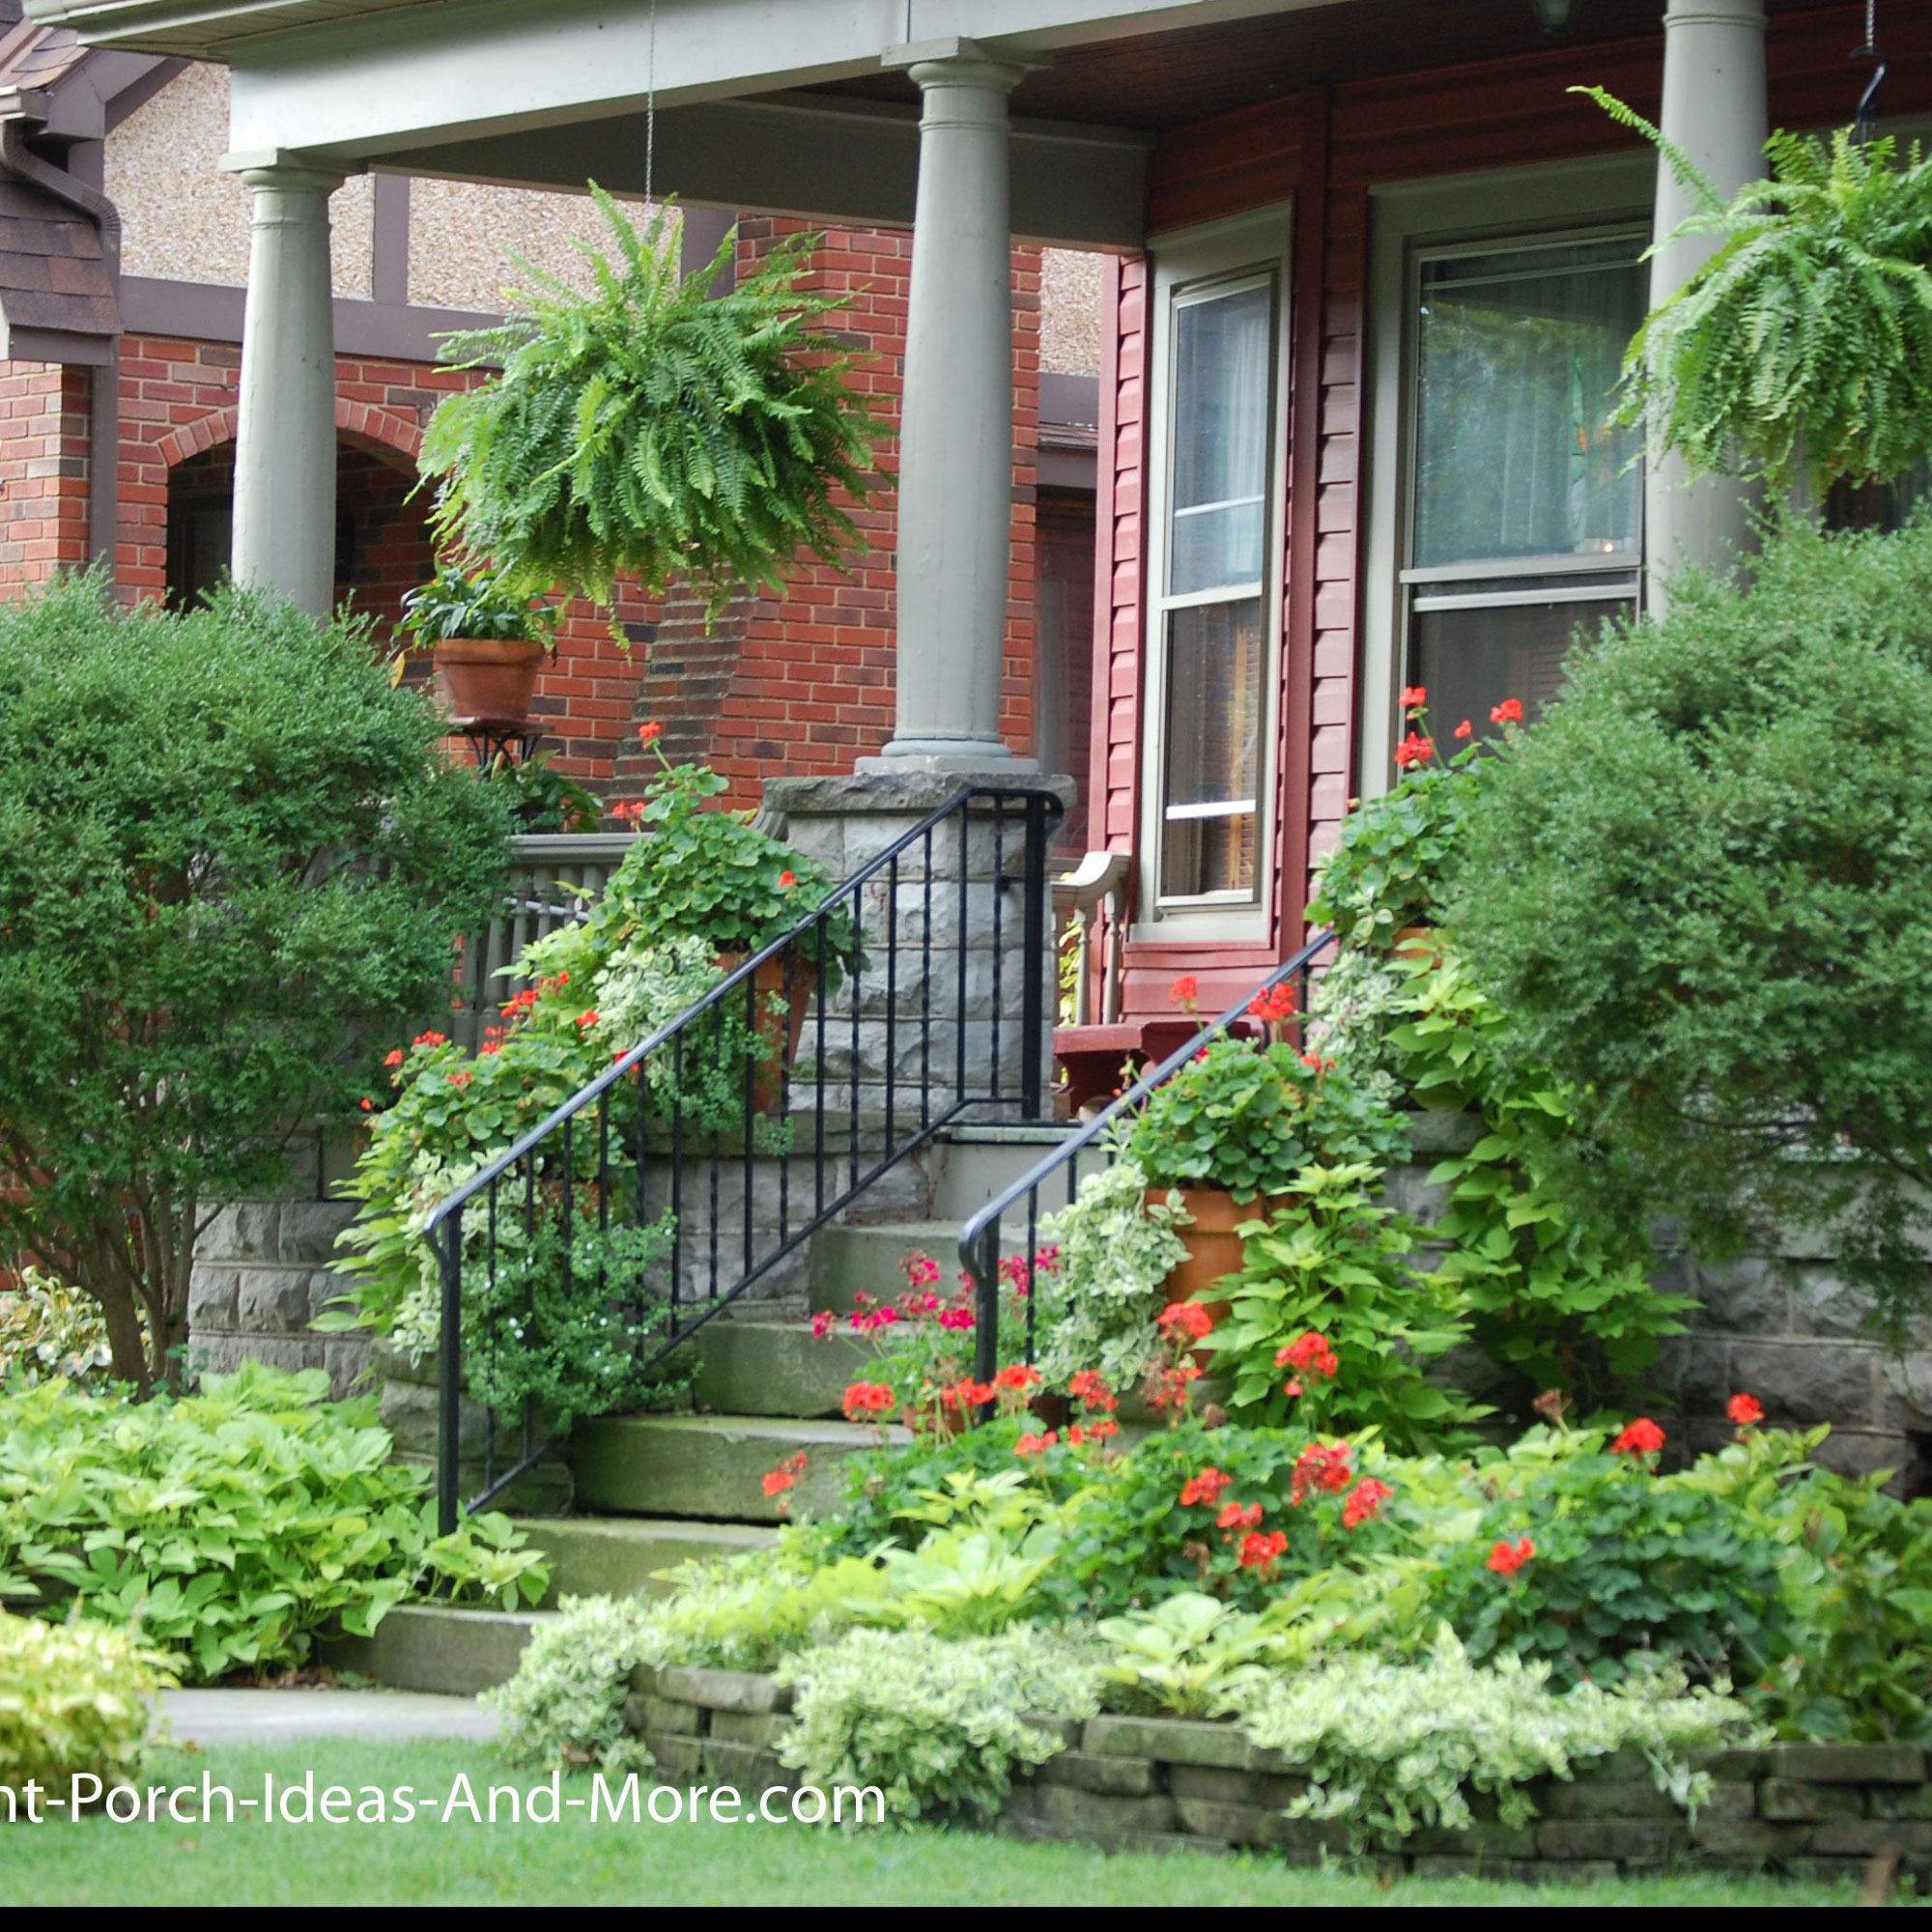 Porch landscaping ideas for your front yard and more for Yard landscape design